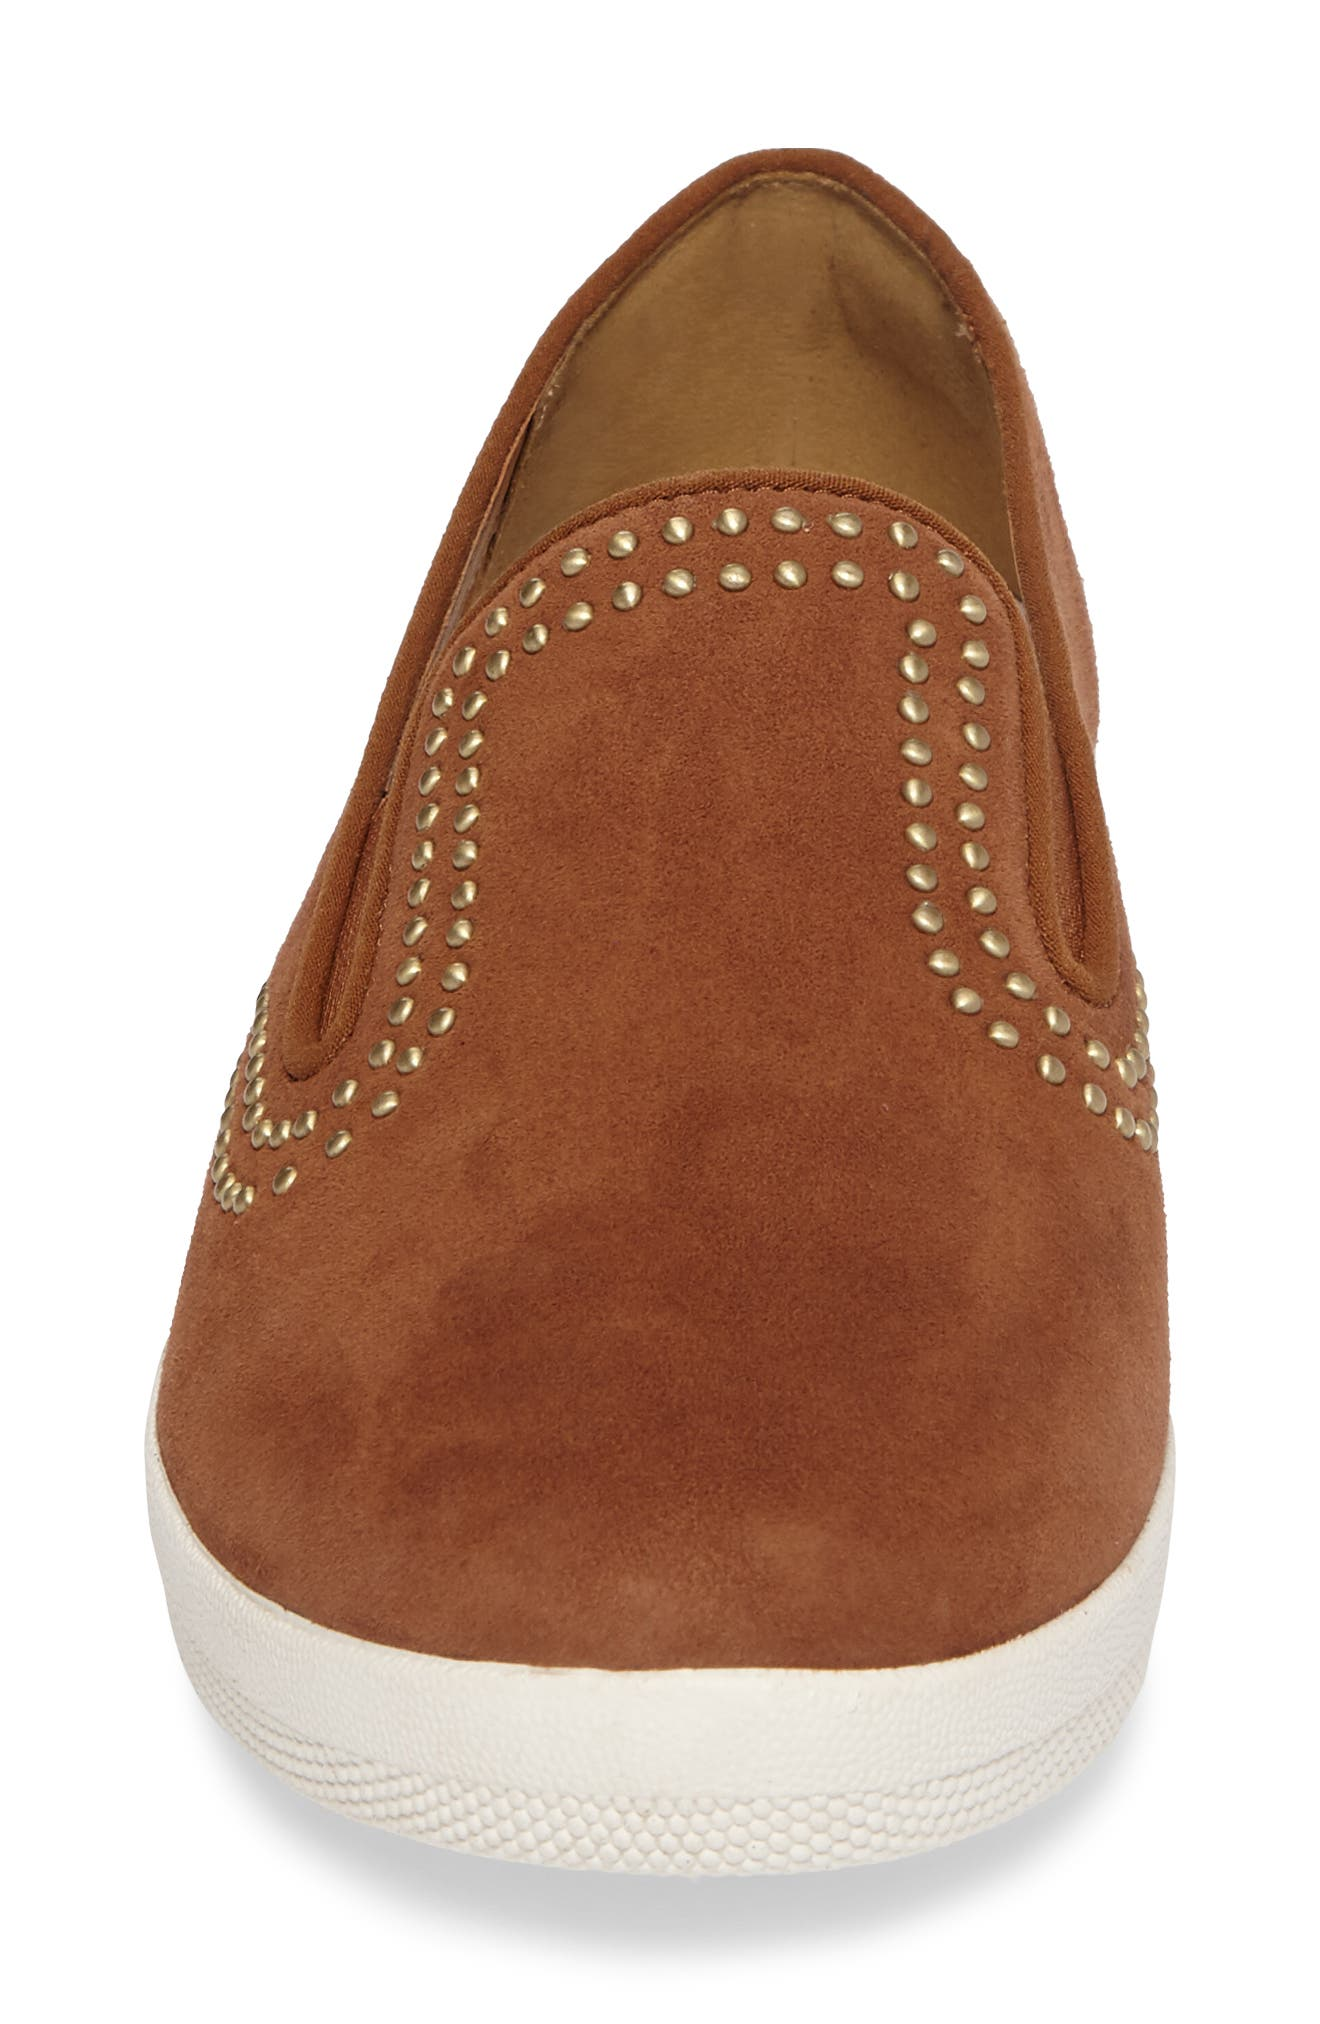 Superskate Studded Wedge Loafer,                             Alternate thumbnail 4, color,                             Tan Faux Suede